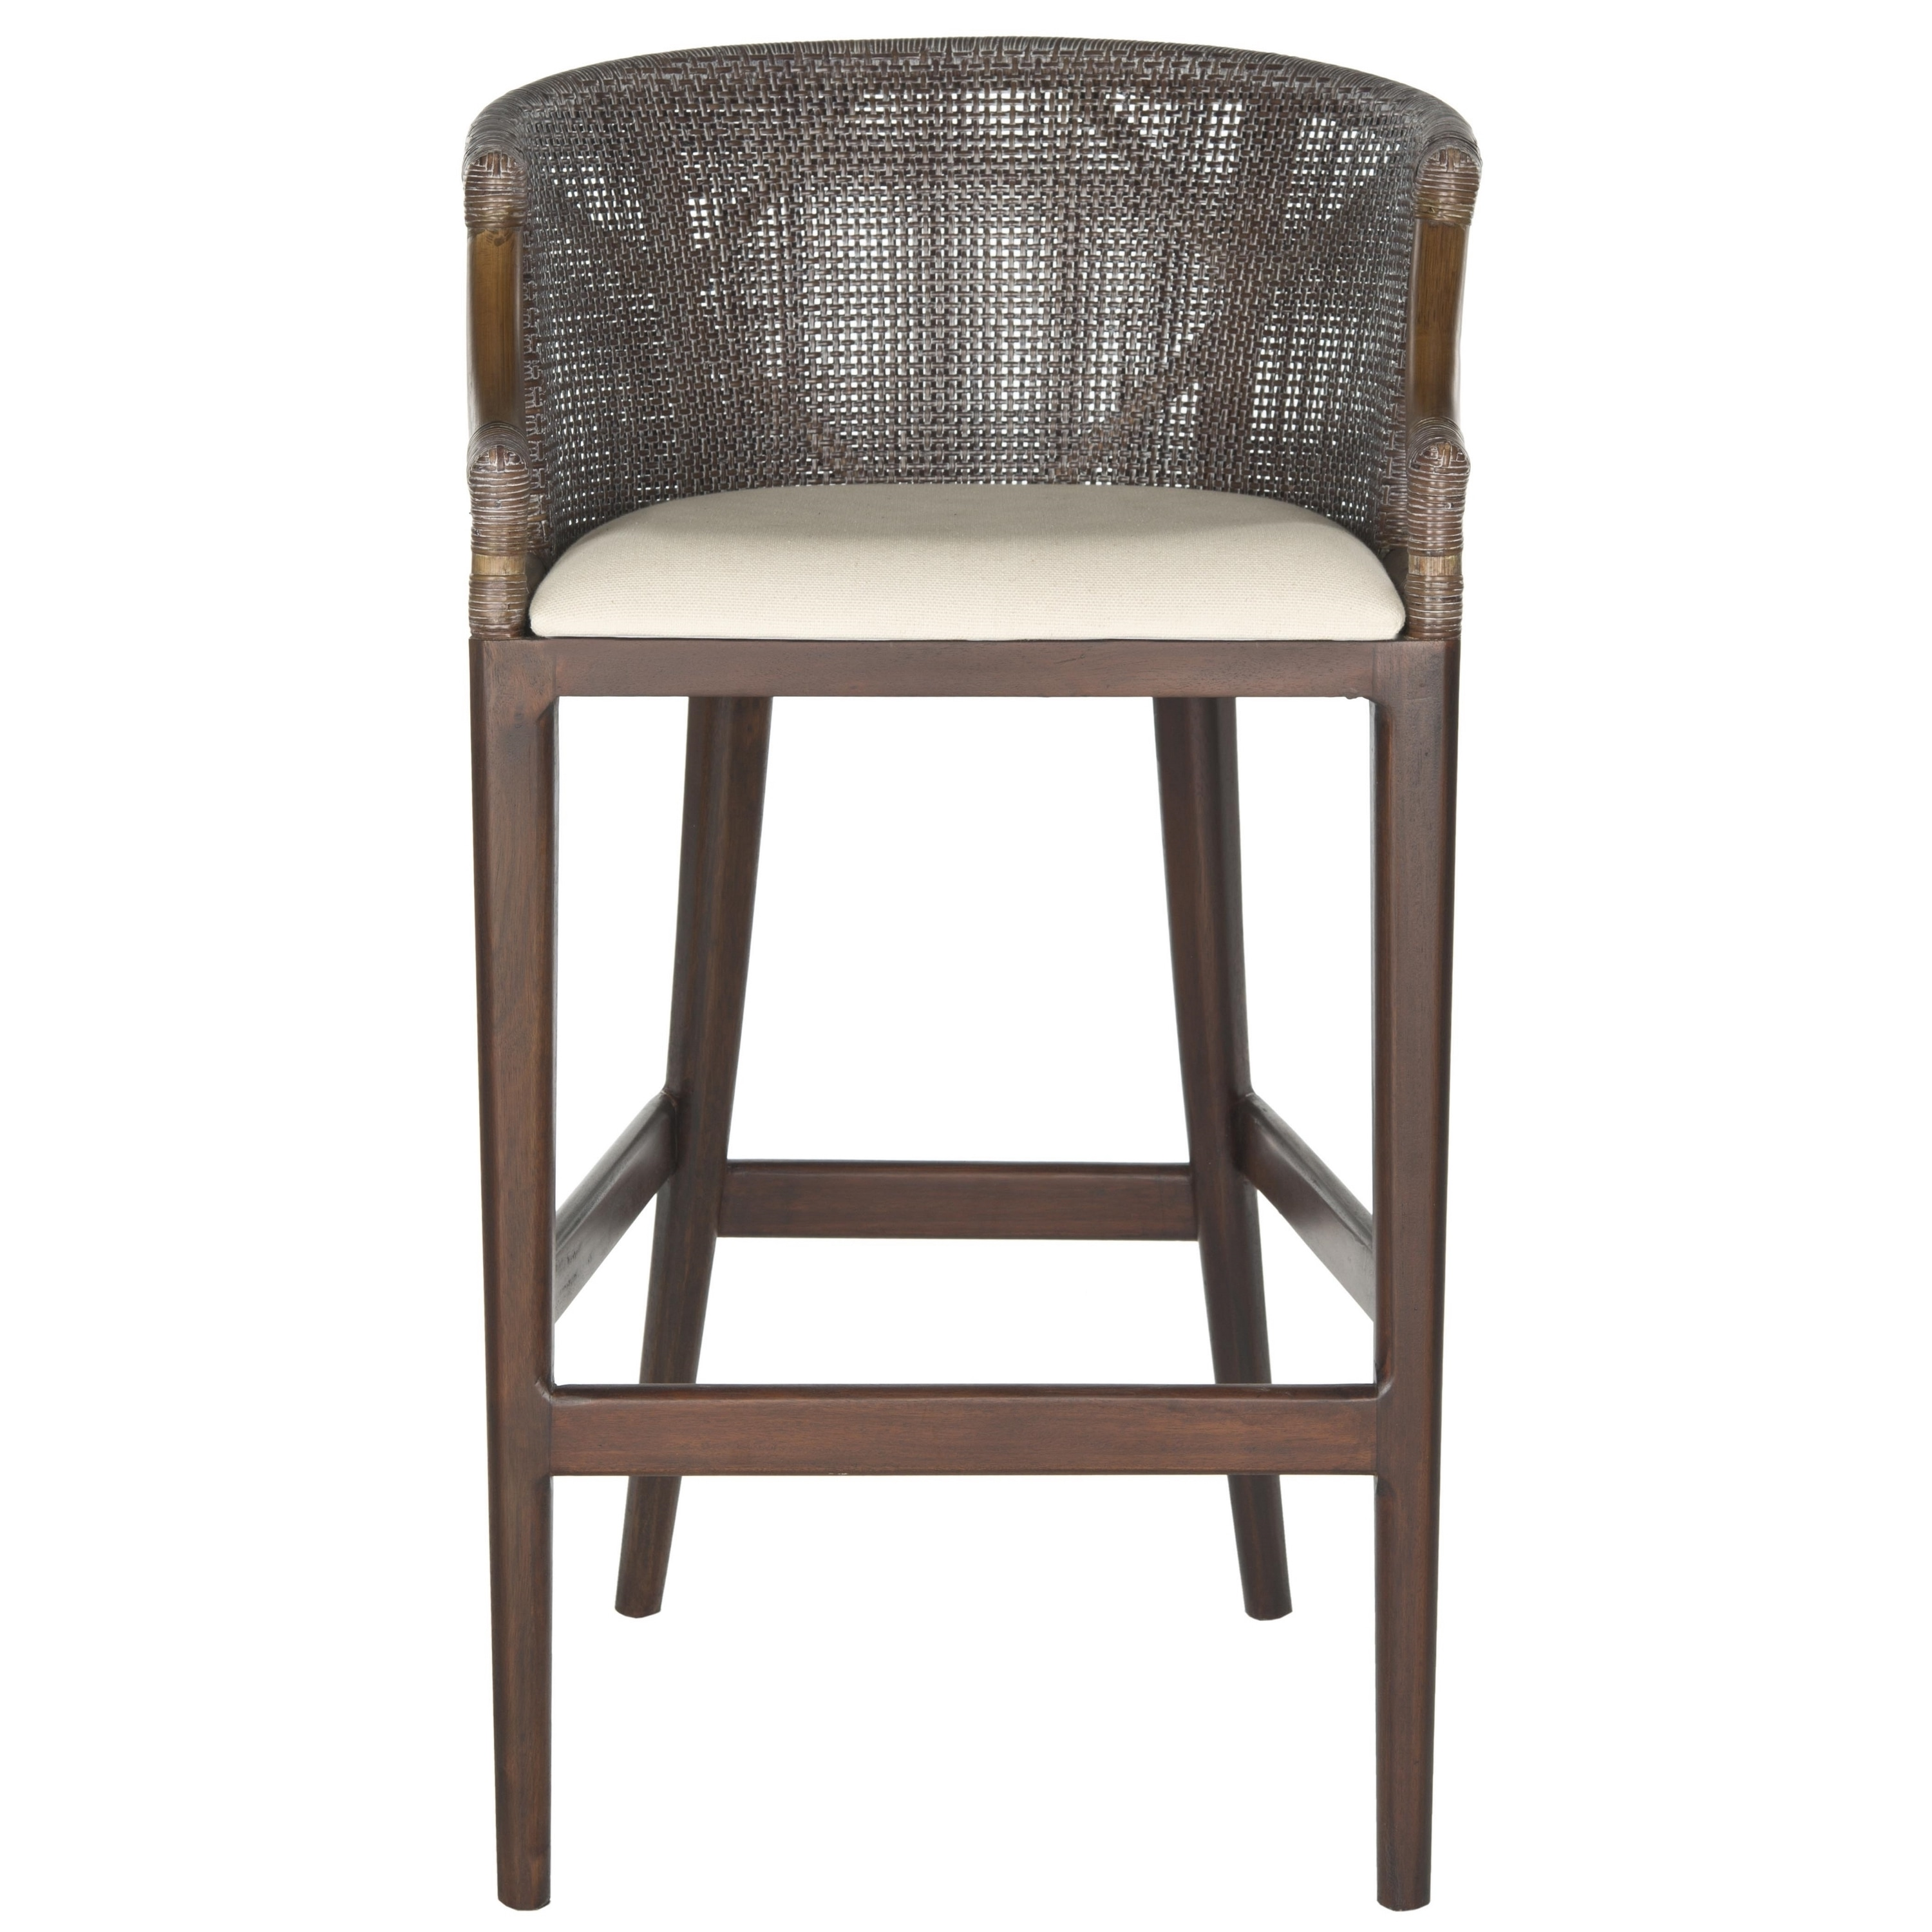 Safavieh Rural Woven Dining 28 Inch Brando Brown Bar Stool Free Shipping Today 9542164